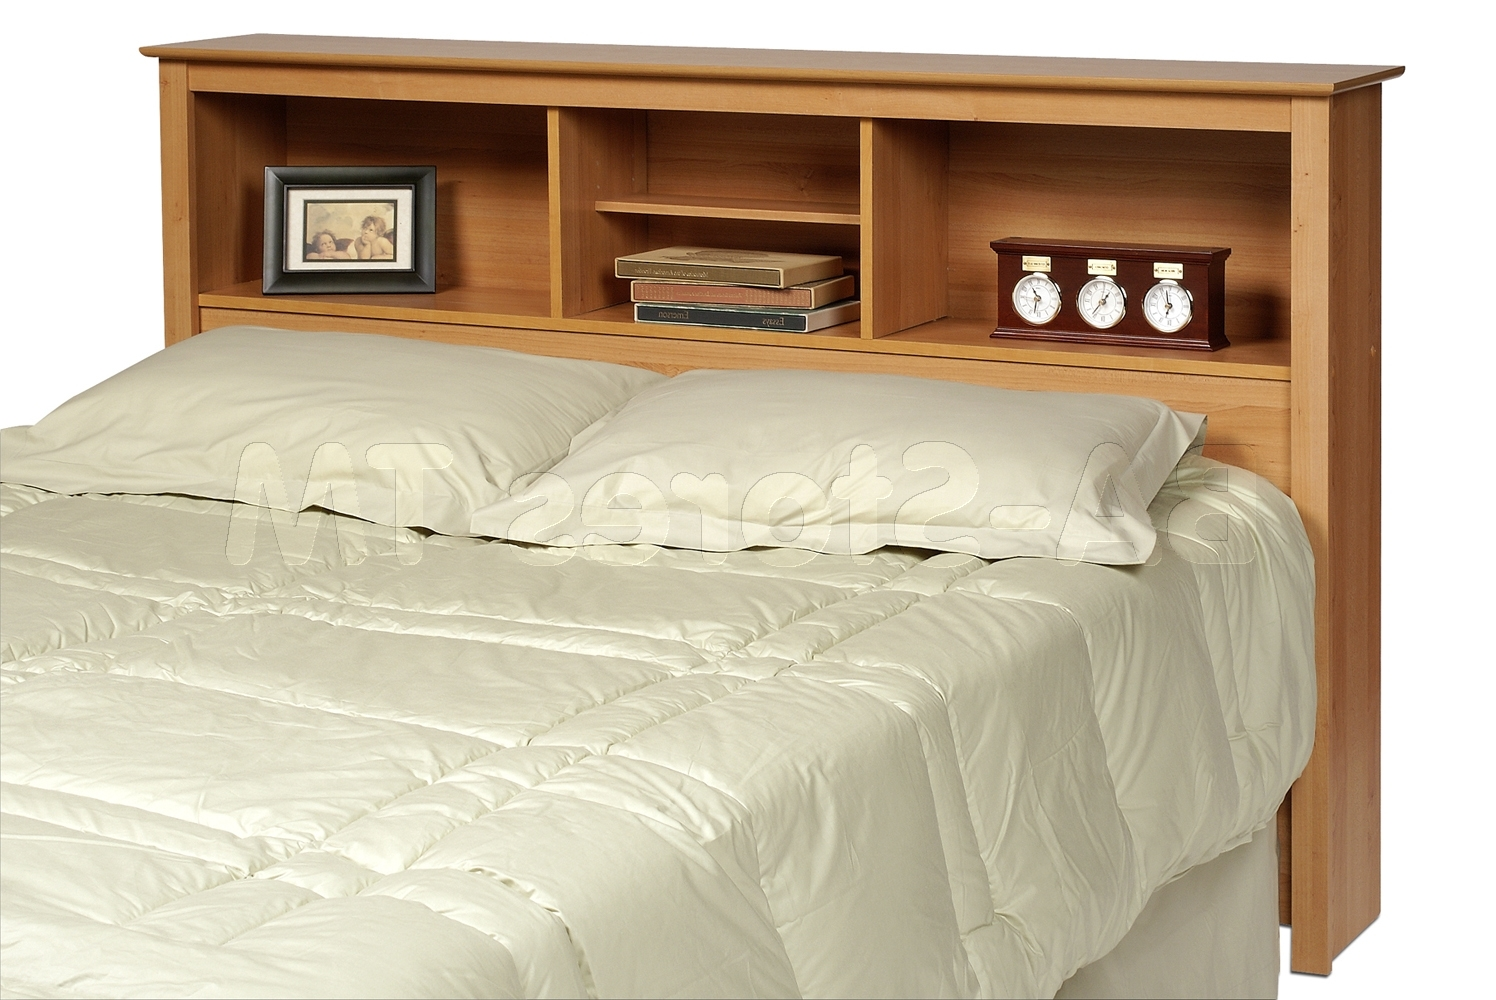 Most Up To Date Queen Bookcases Headboard Inside Prepac Sonoma Double/queen Bookcase Headboard (View 10 of 15)